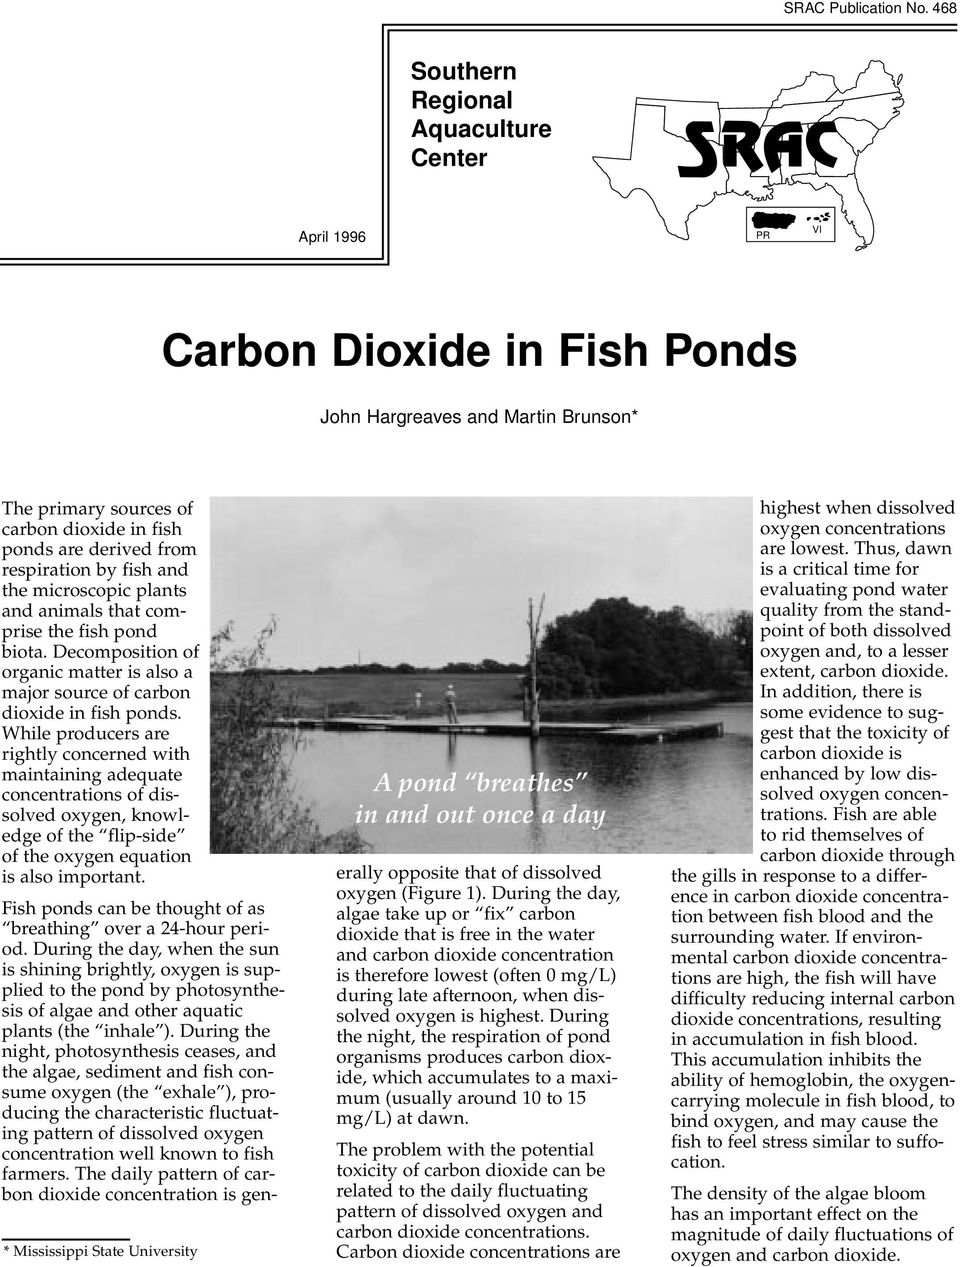 primary sources of carbon dioxide in fish ponds are derived from respiration by fish and the microscopic plants and animals that comprise the fish pond biota.